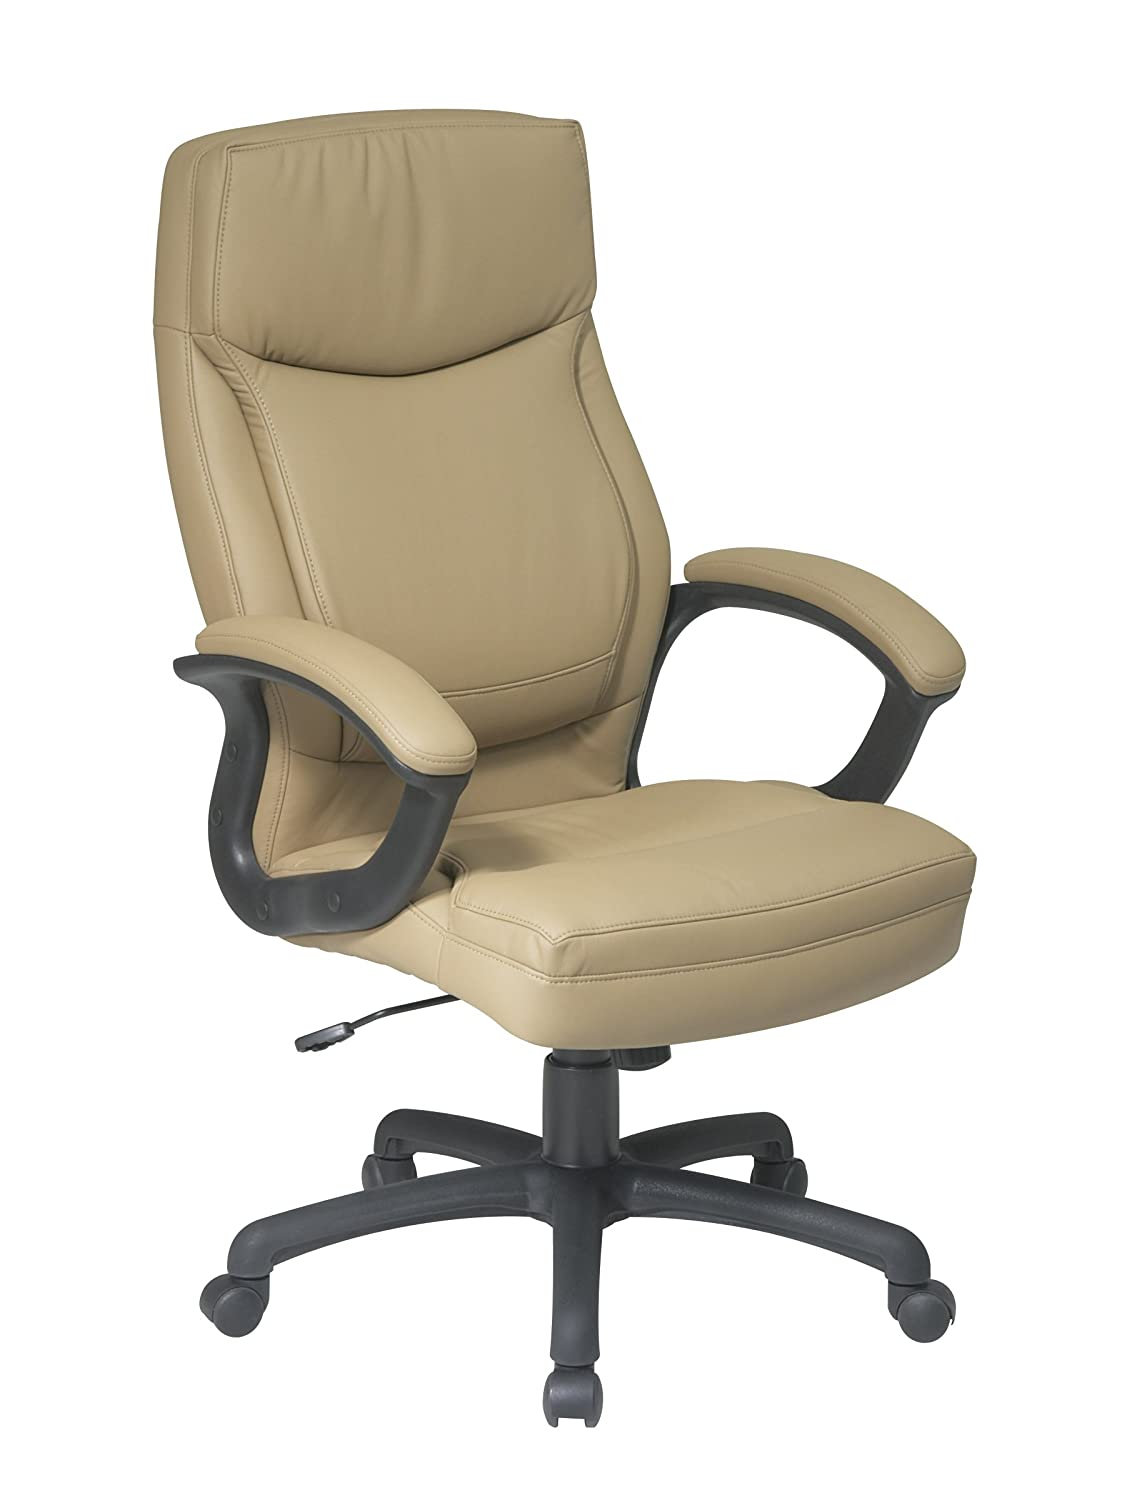 Executive High Back Eco Leather Chair with Locking Tilt Control